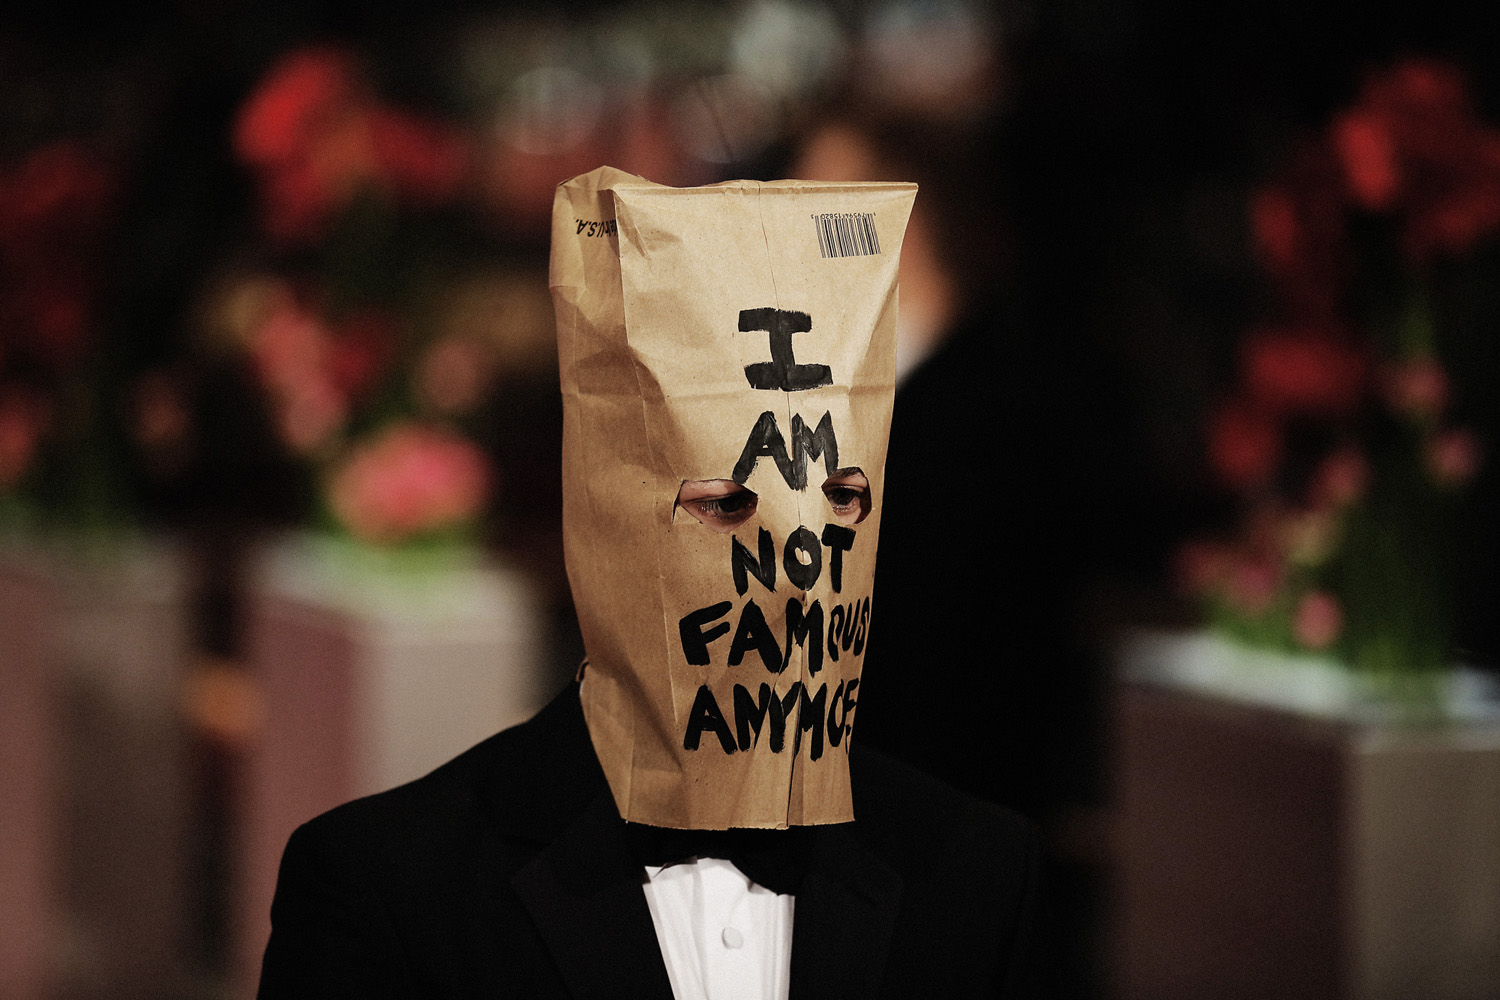 Shia LaBeouf attends the 'Nymphomaniac Volume I (long version)' premiere during 64th Berlinale International Film Festival at Berlinale Palast on February 9, 2014 in Berlin, Germany.